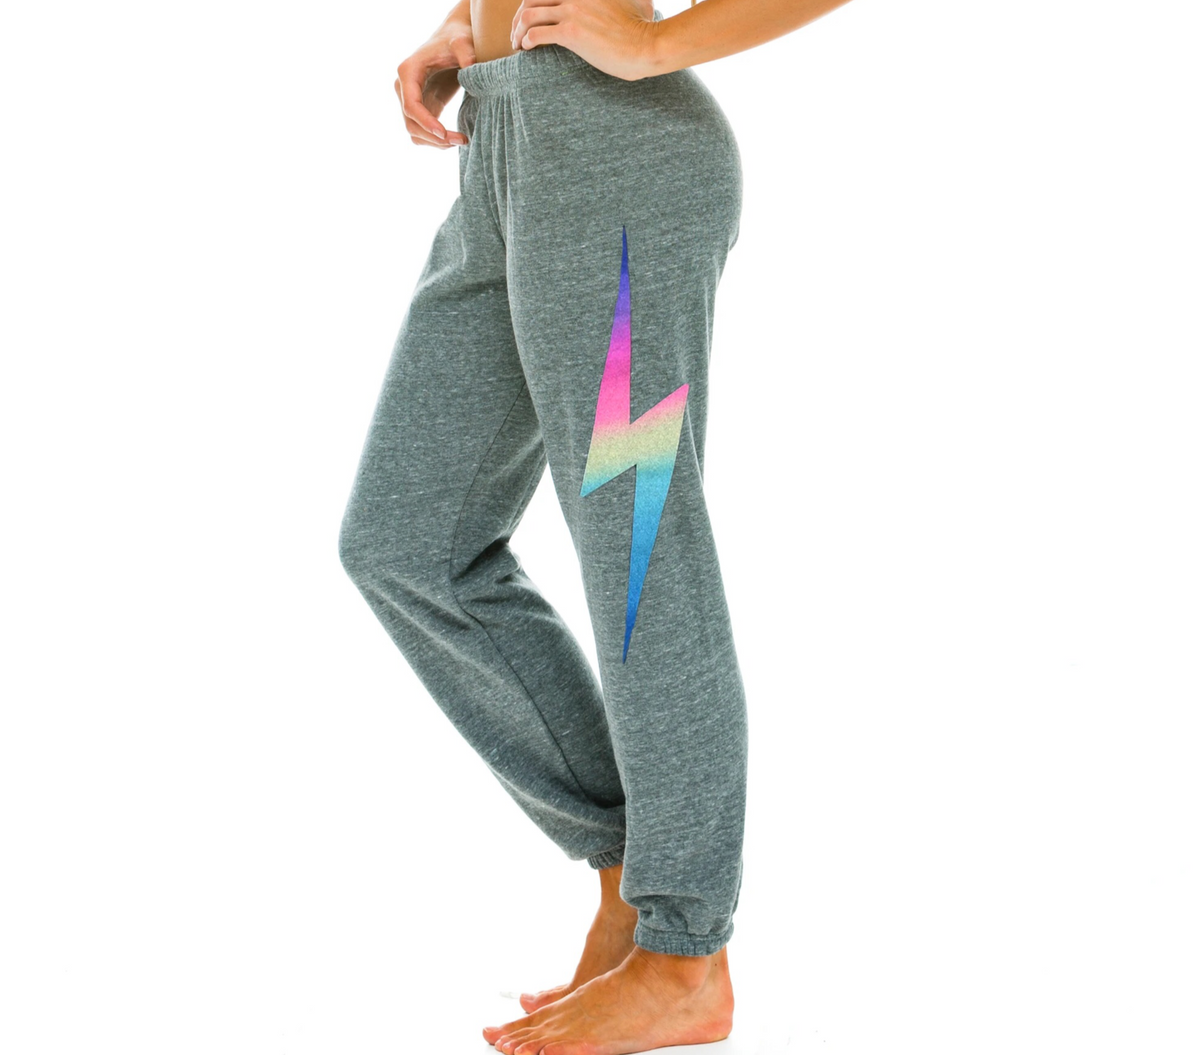 Bolt Sweatpant - Heather Grey - Wheat Boutique